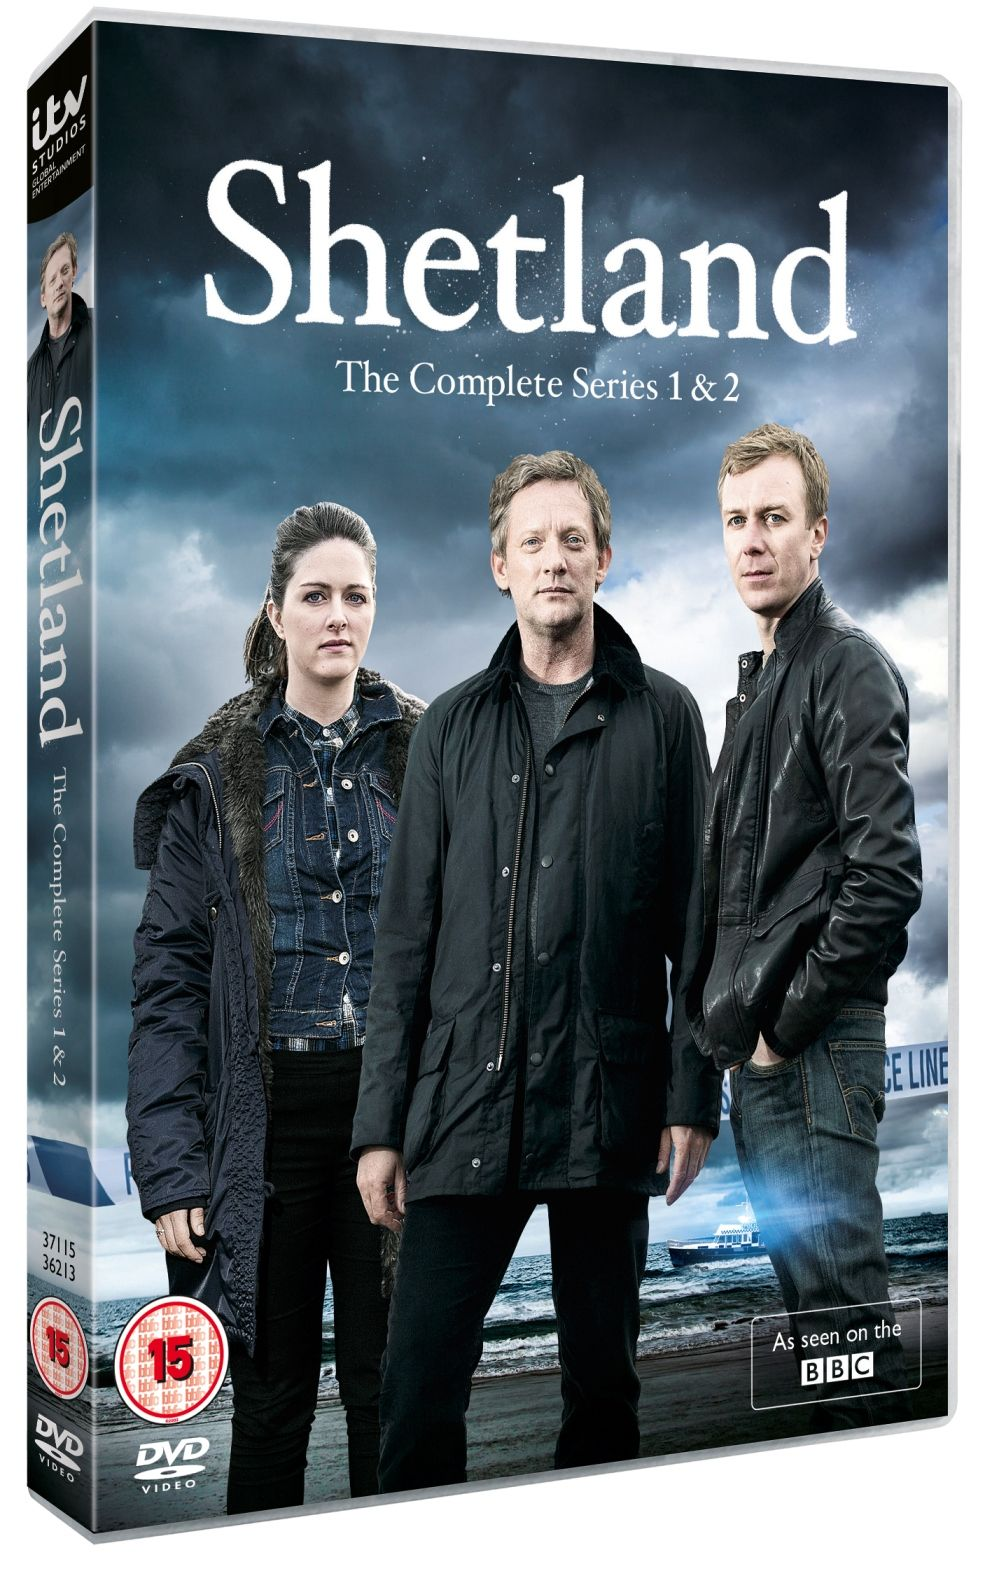 Shetland On Dvd A Chat With Douglas Henshall British Tv Series Tv Series 2013 Tv Series